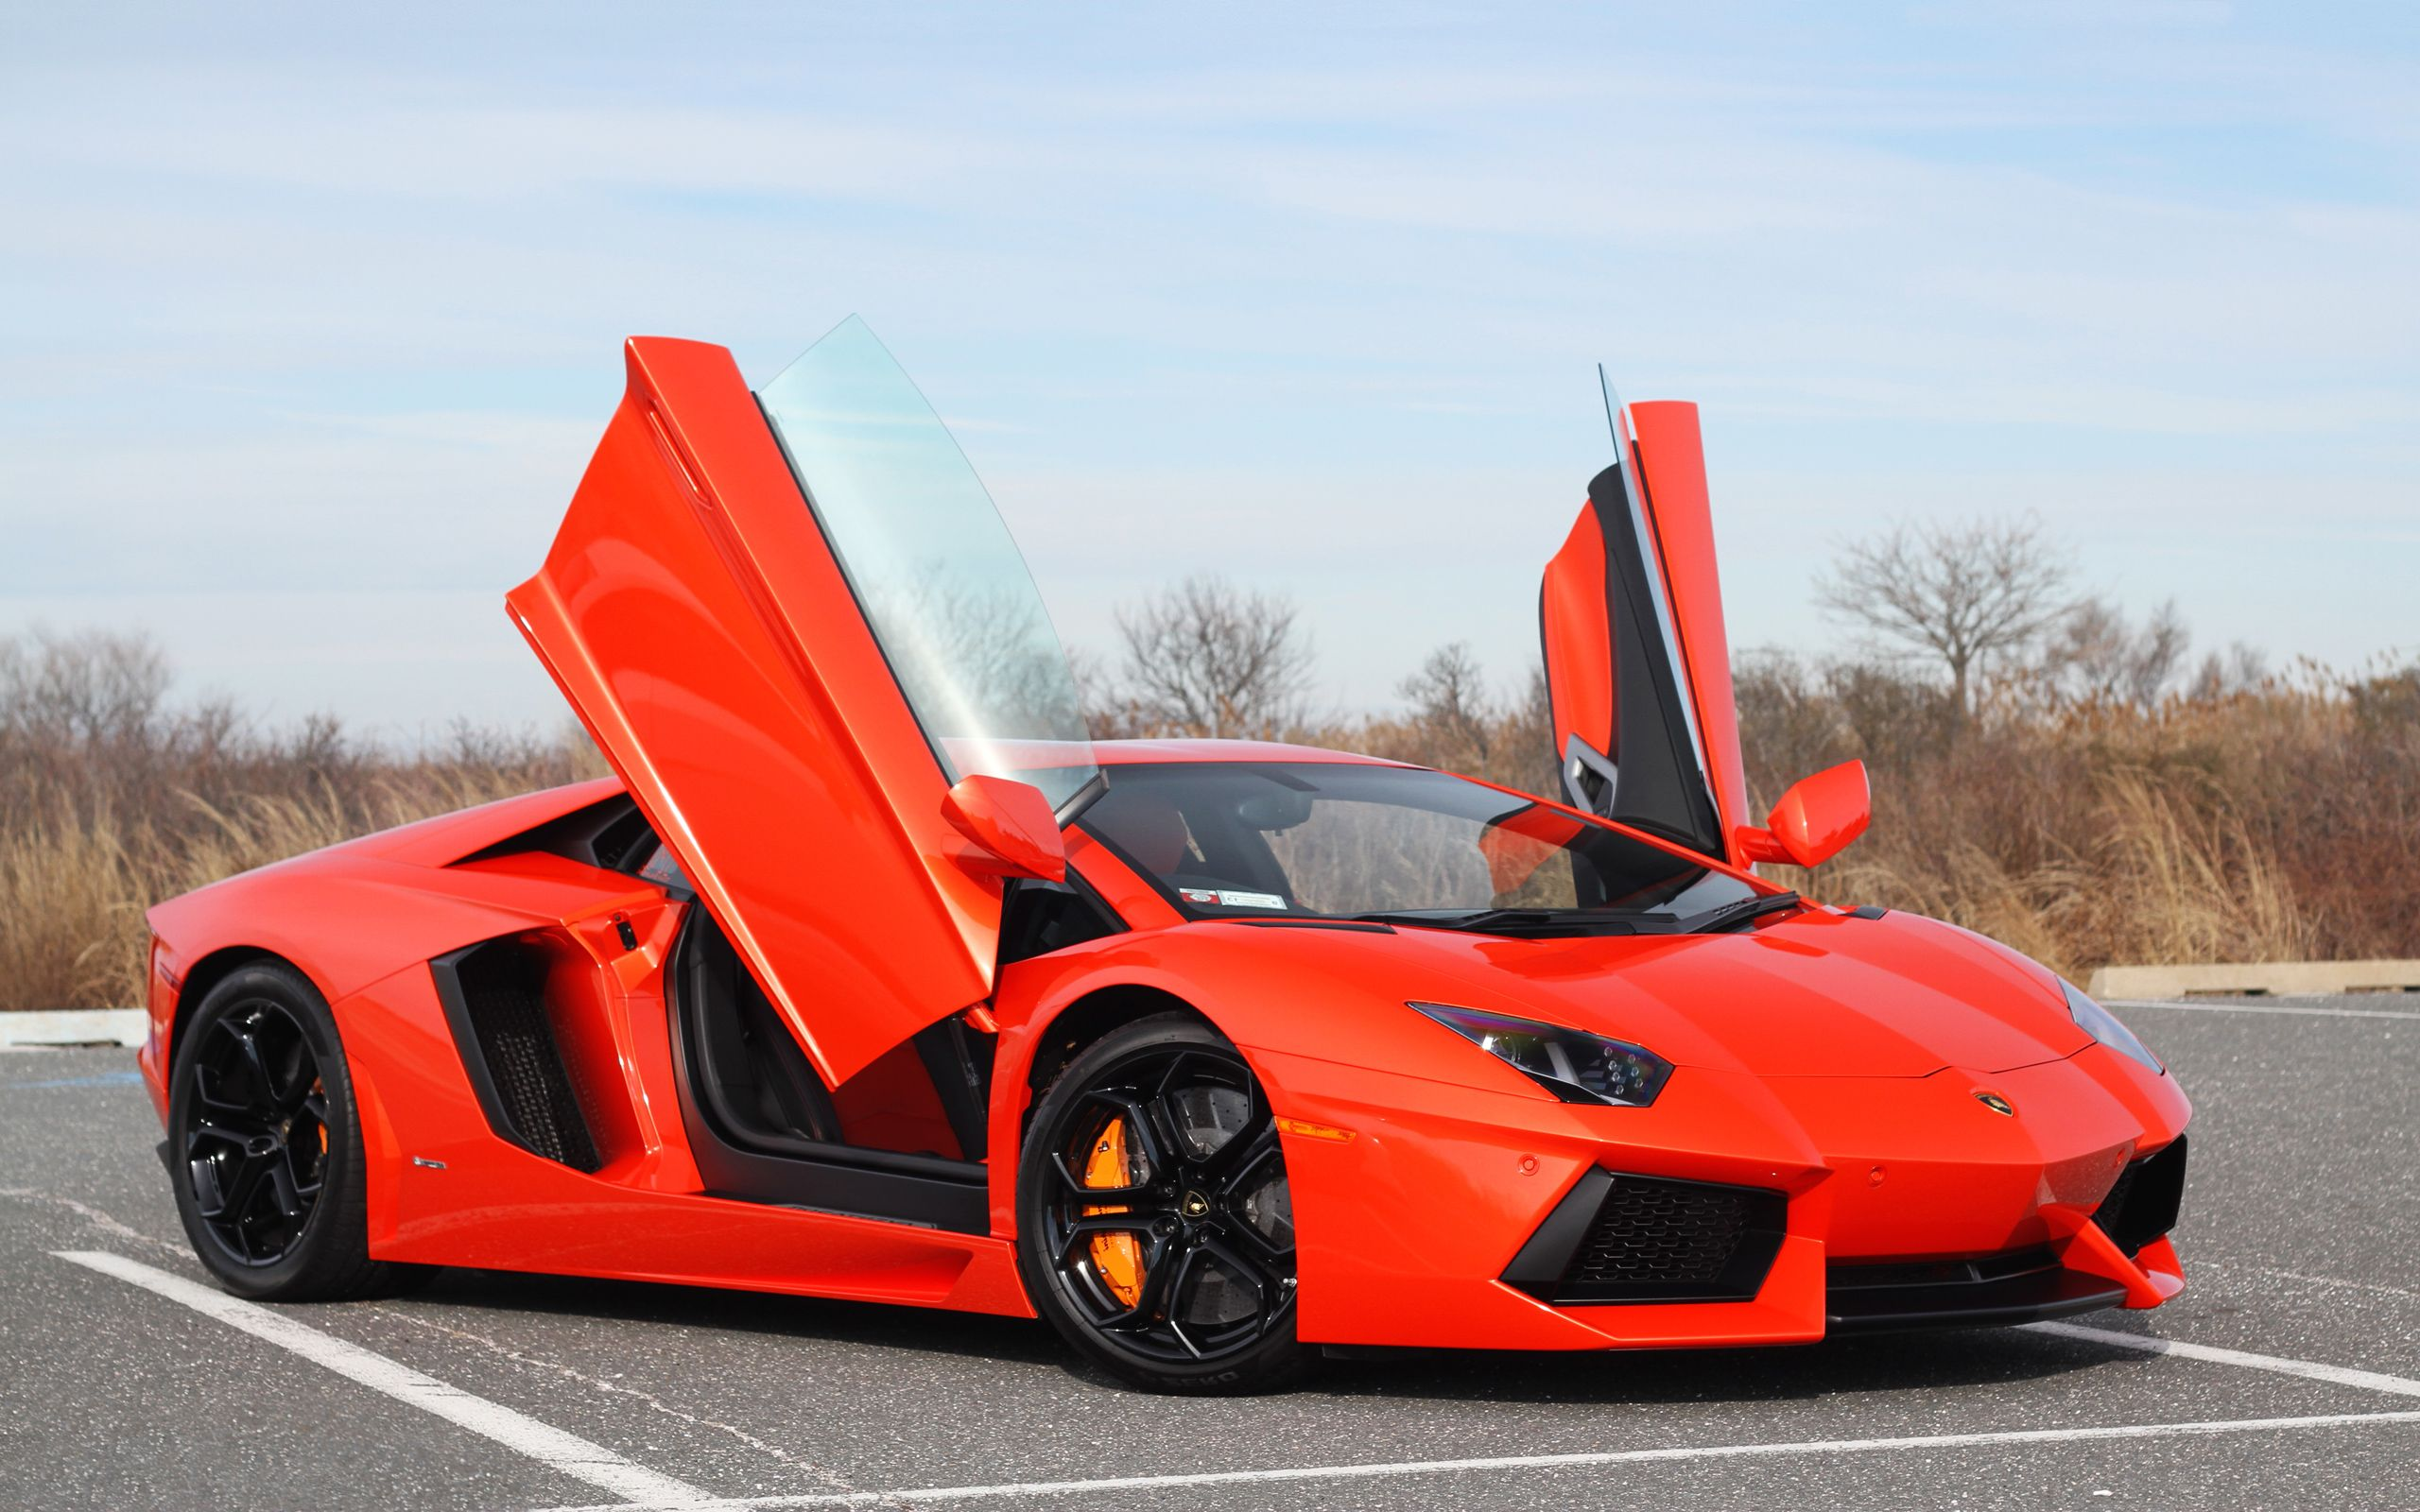 Lamborghini Aventador Red Wallpapers Pictures Photos Images Supercars See More Dream Cars At Stylendesigns Com Sportauto S